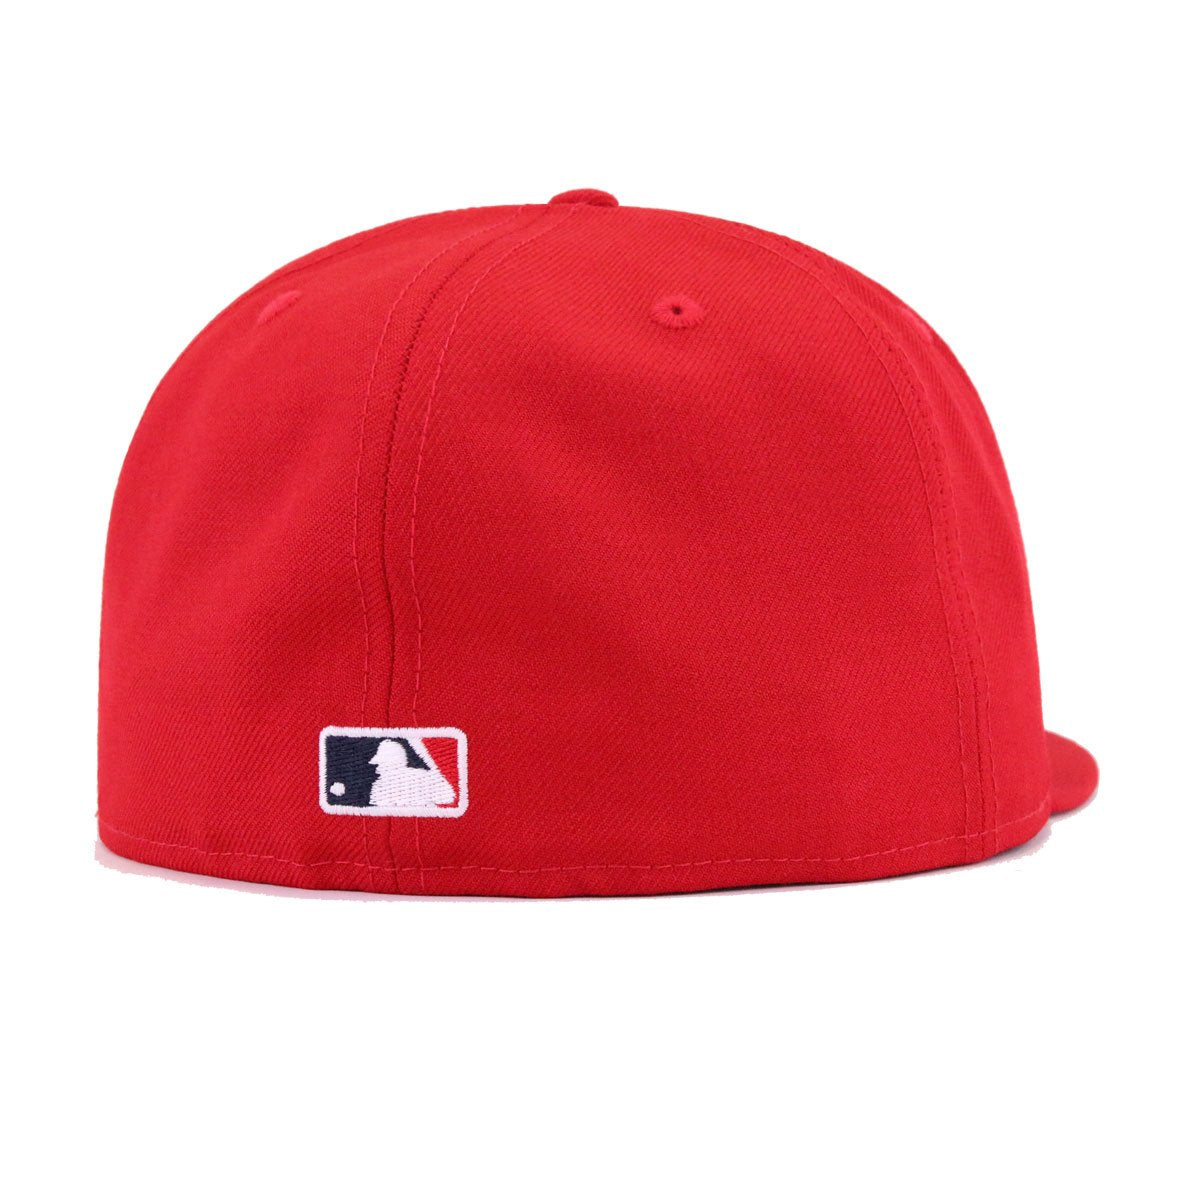 Los Angeles Angels Scarlet New Era 59Fifty Fitted